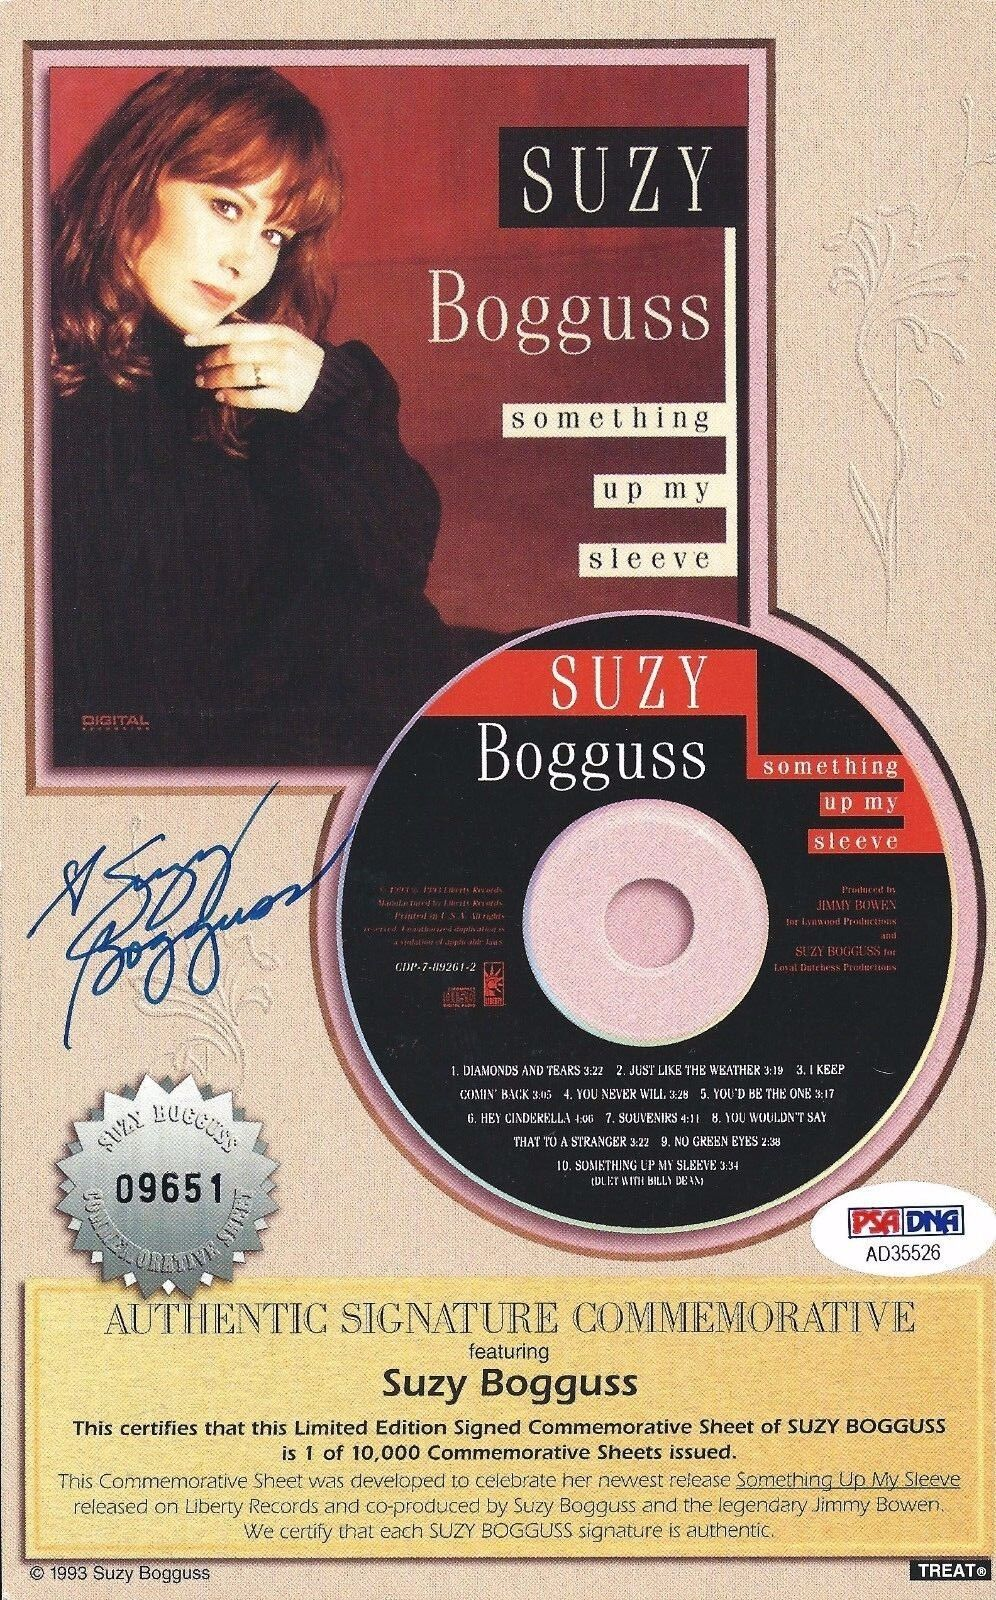 Suzy Bogguss Signed 5.5x8.5 Photo *American Singer-Song Writer PSA AD35526